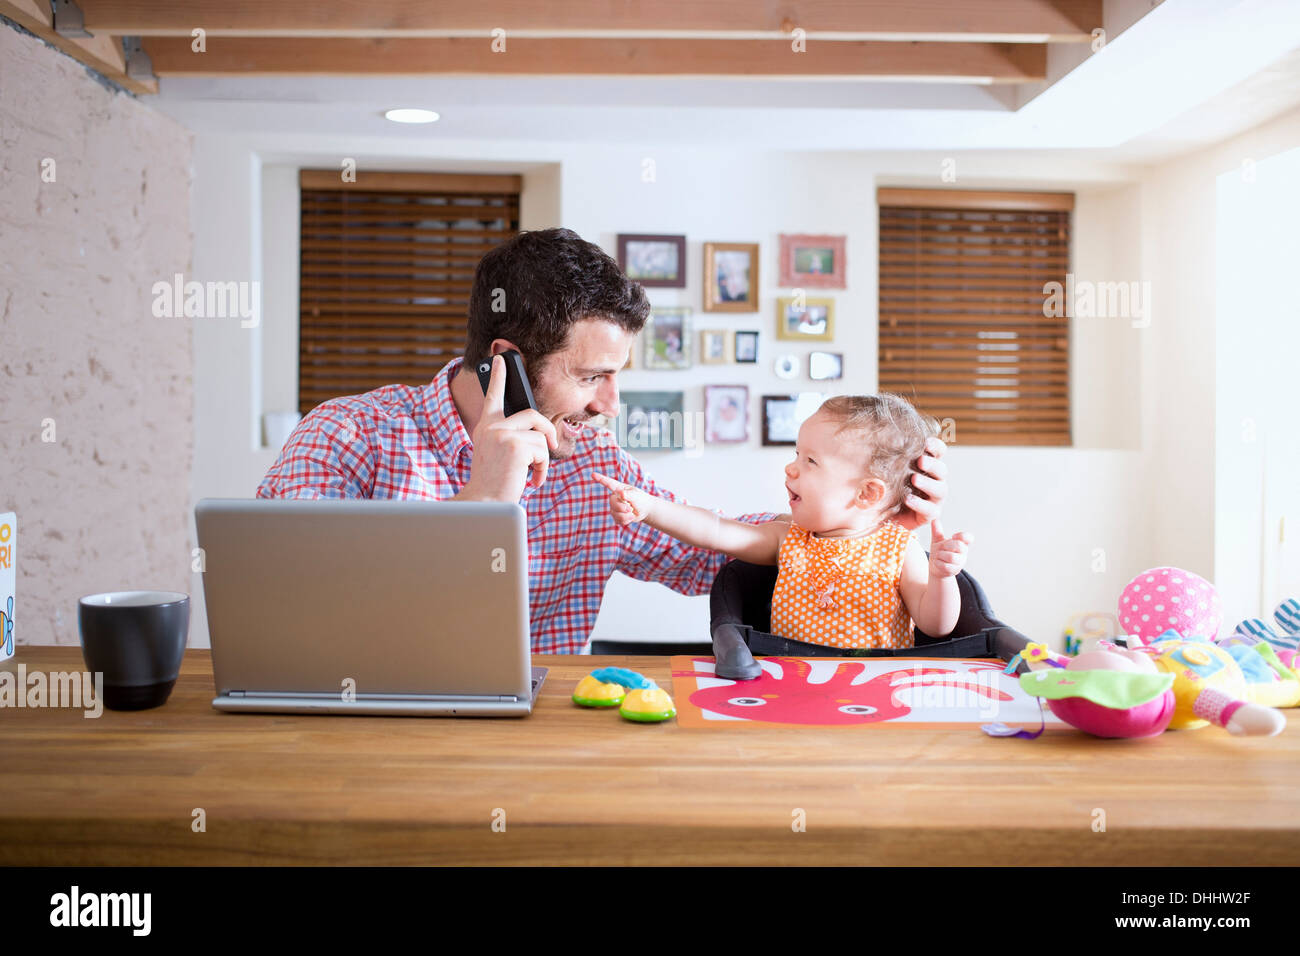 Man and baby sitting at kitchen counter making phone call - Stock Image